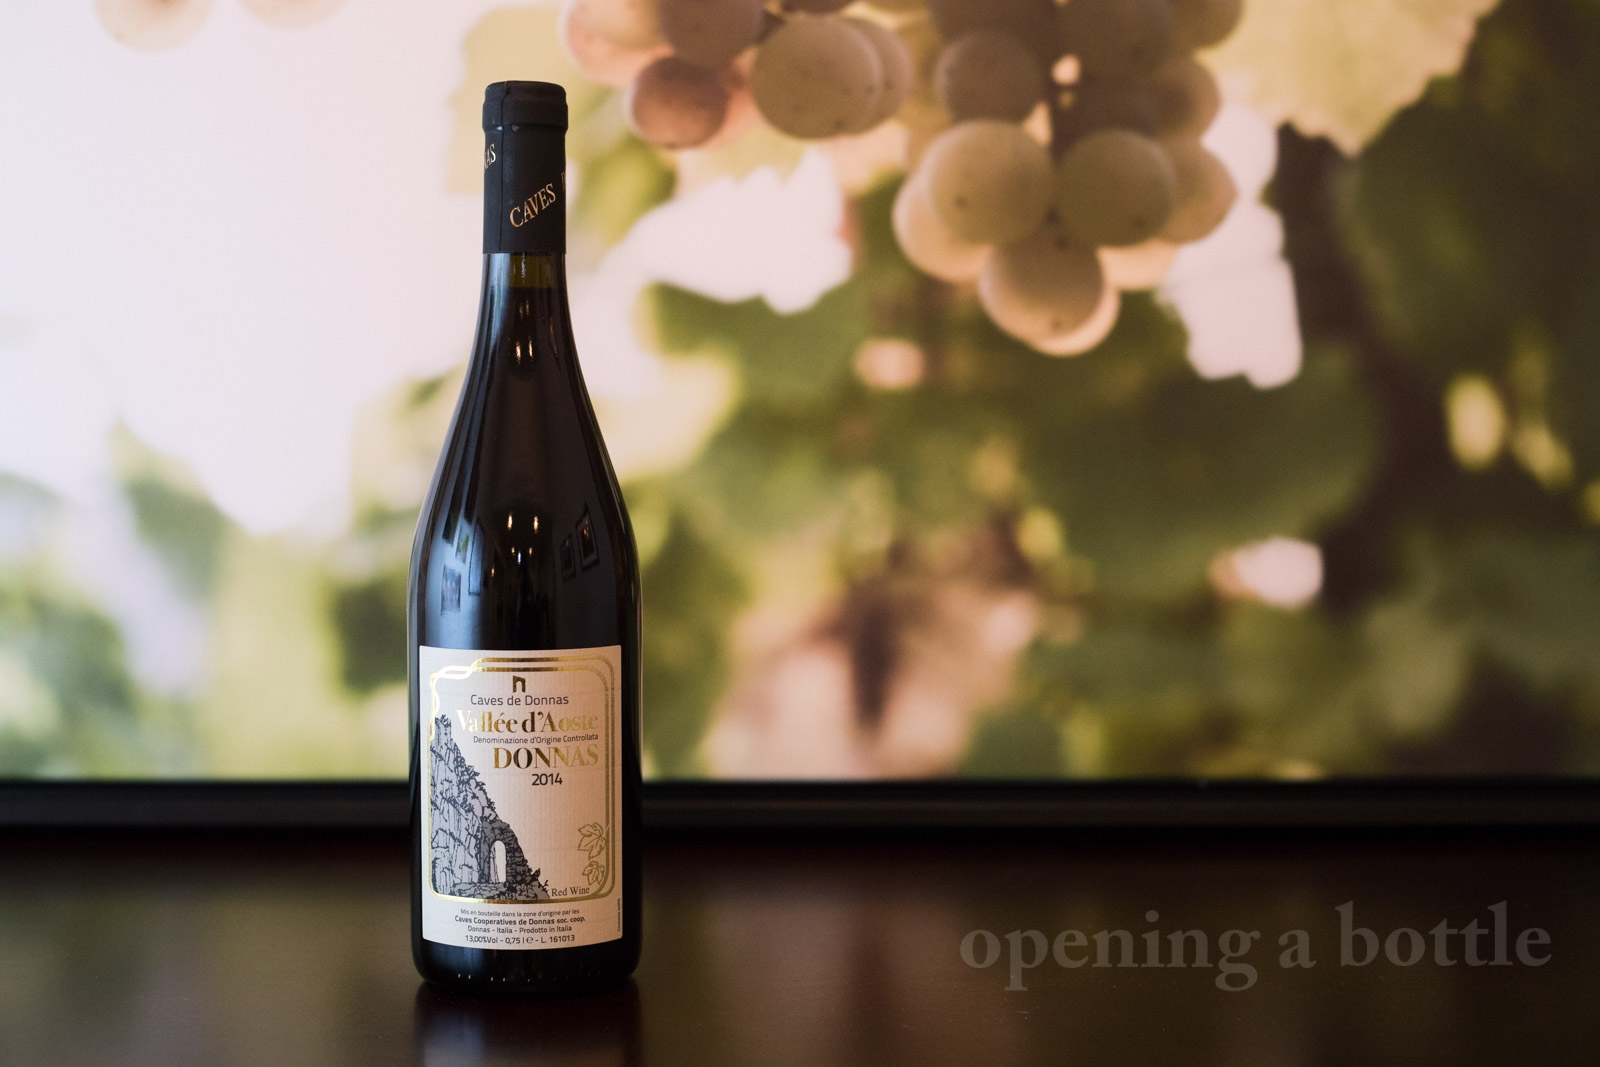 2014 Caves de Donnas Valle d'Aosta Donnas DOC ©Kevin Day/Opening a Bottle